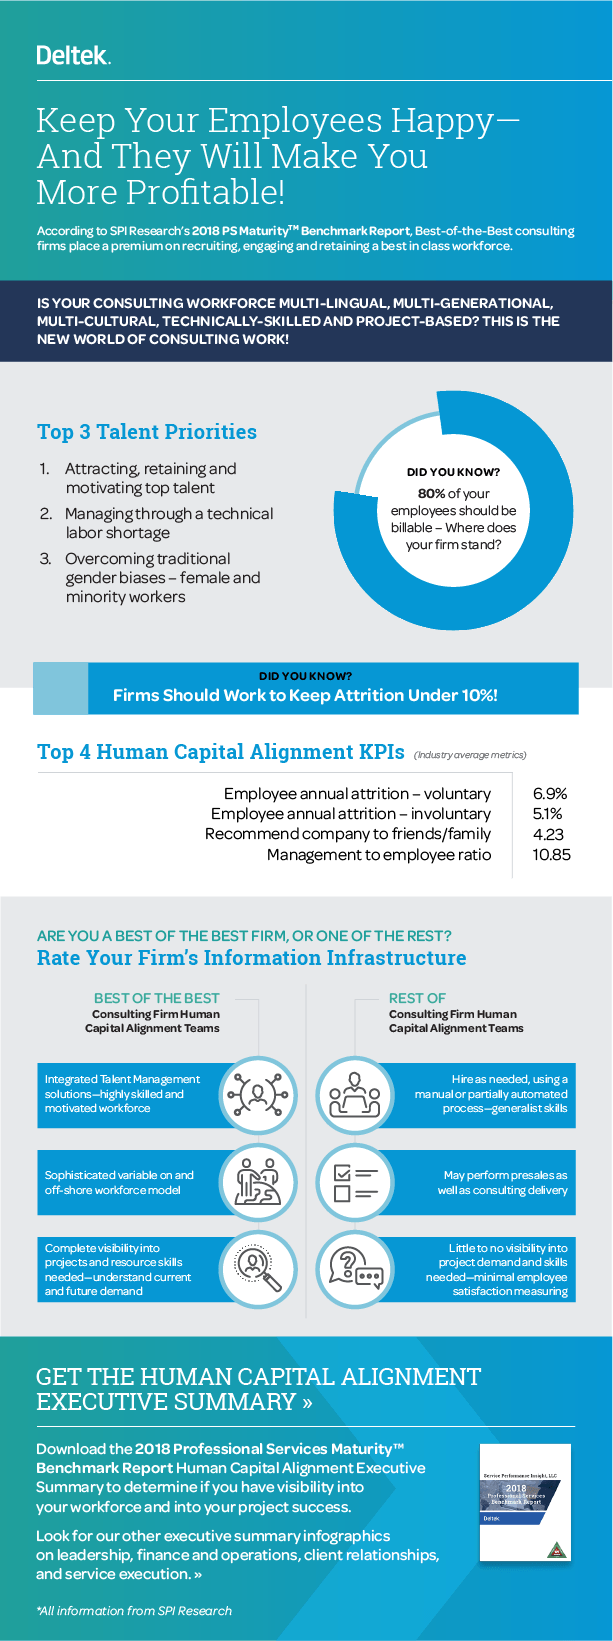 Human Capital Alignment KPIs for Consulting Firms Infographic